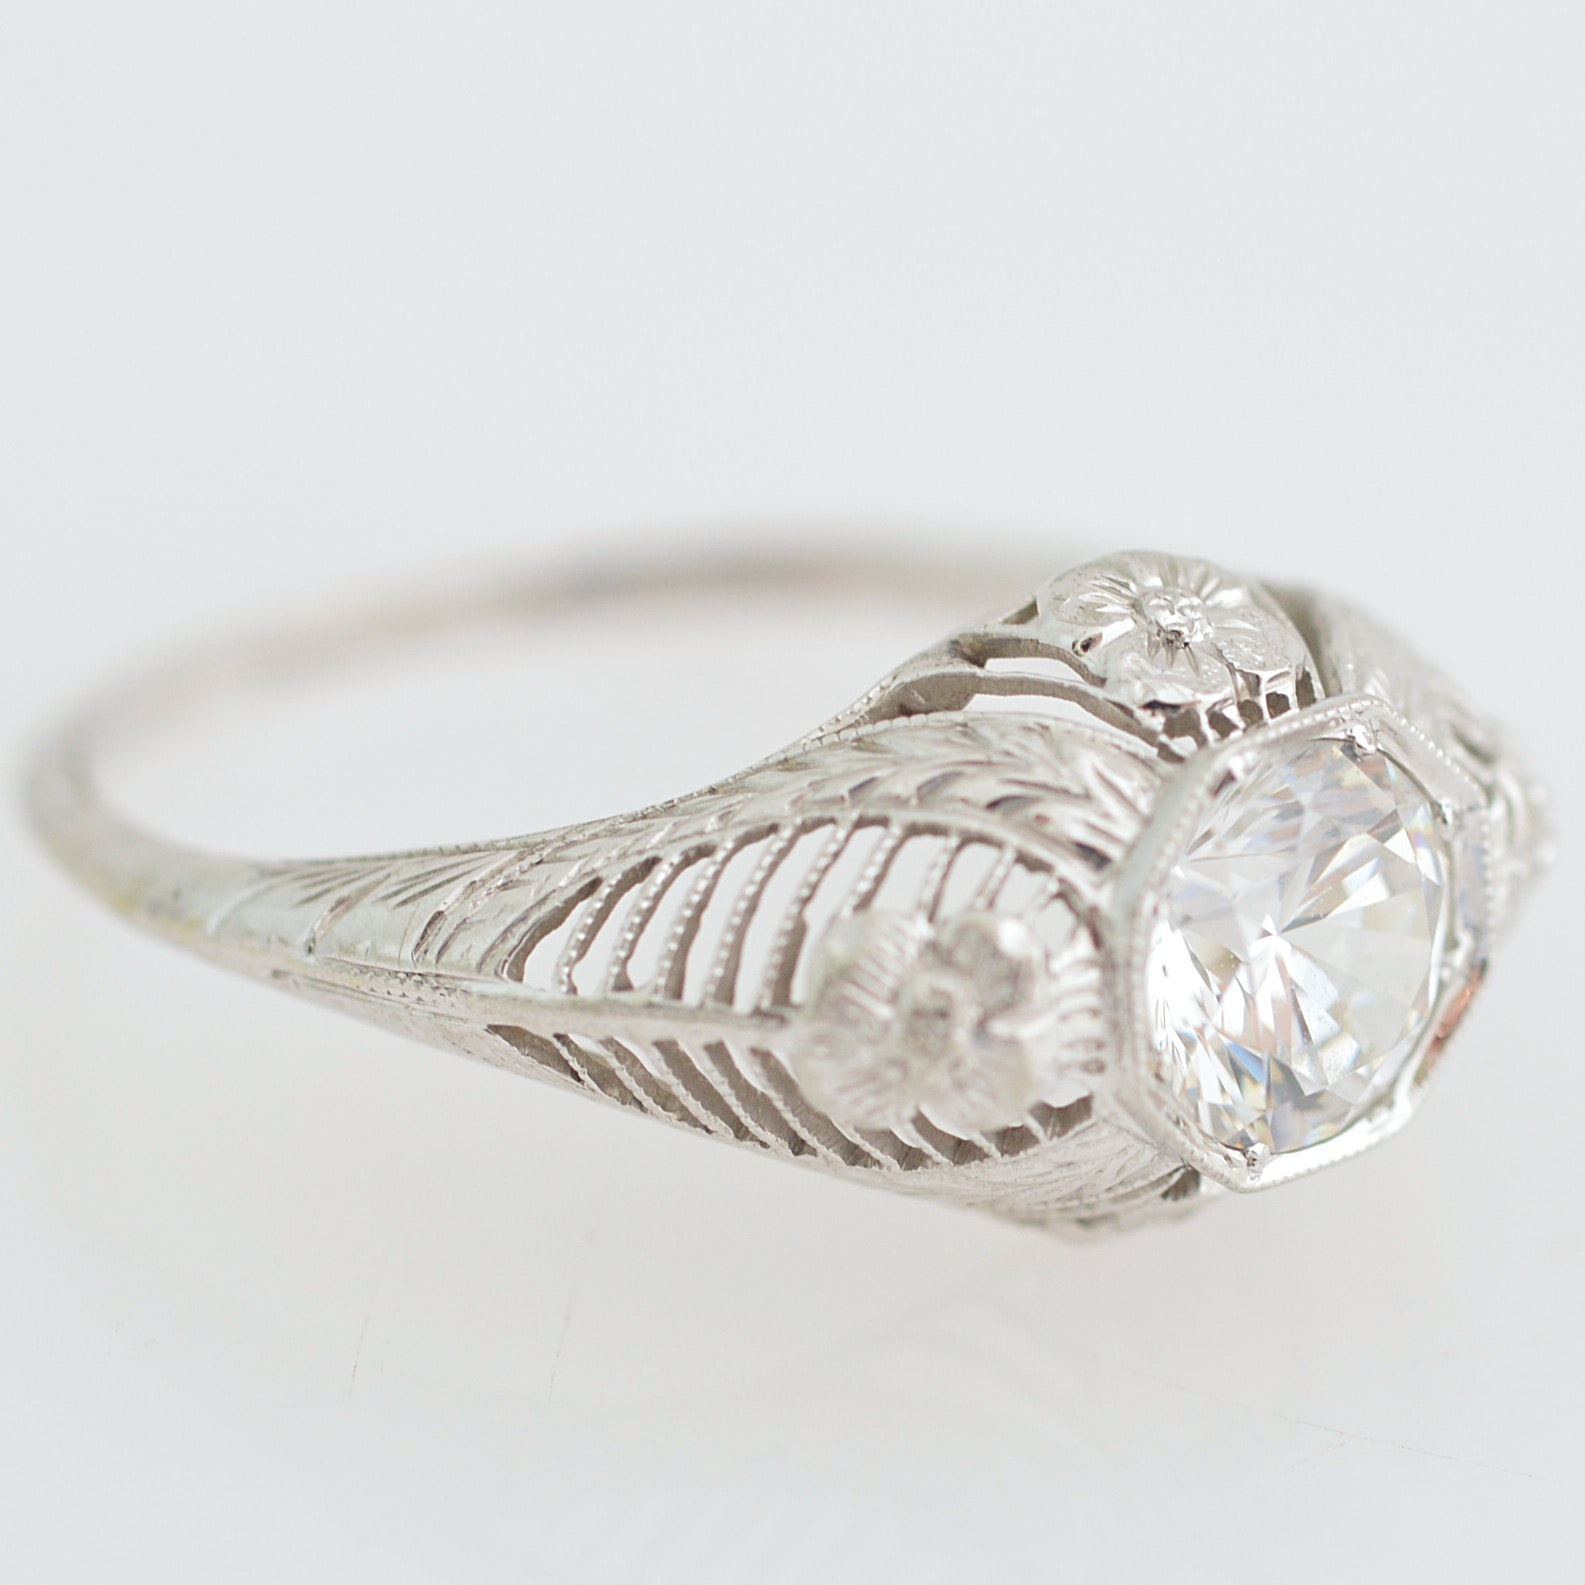 Belais 18K White Gold and CZ Ring